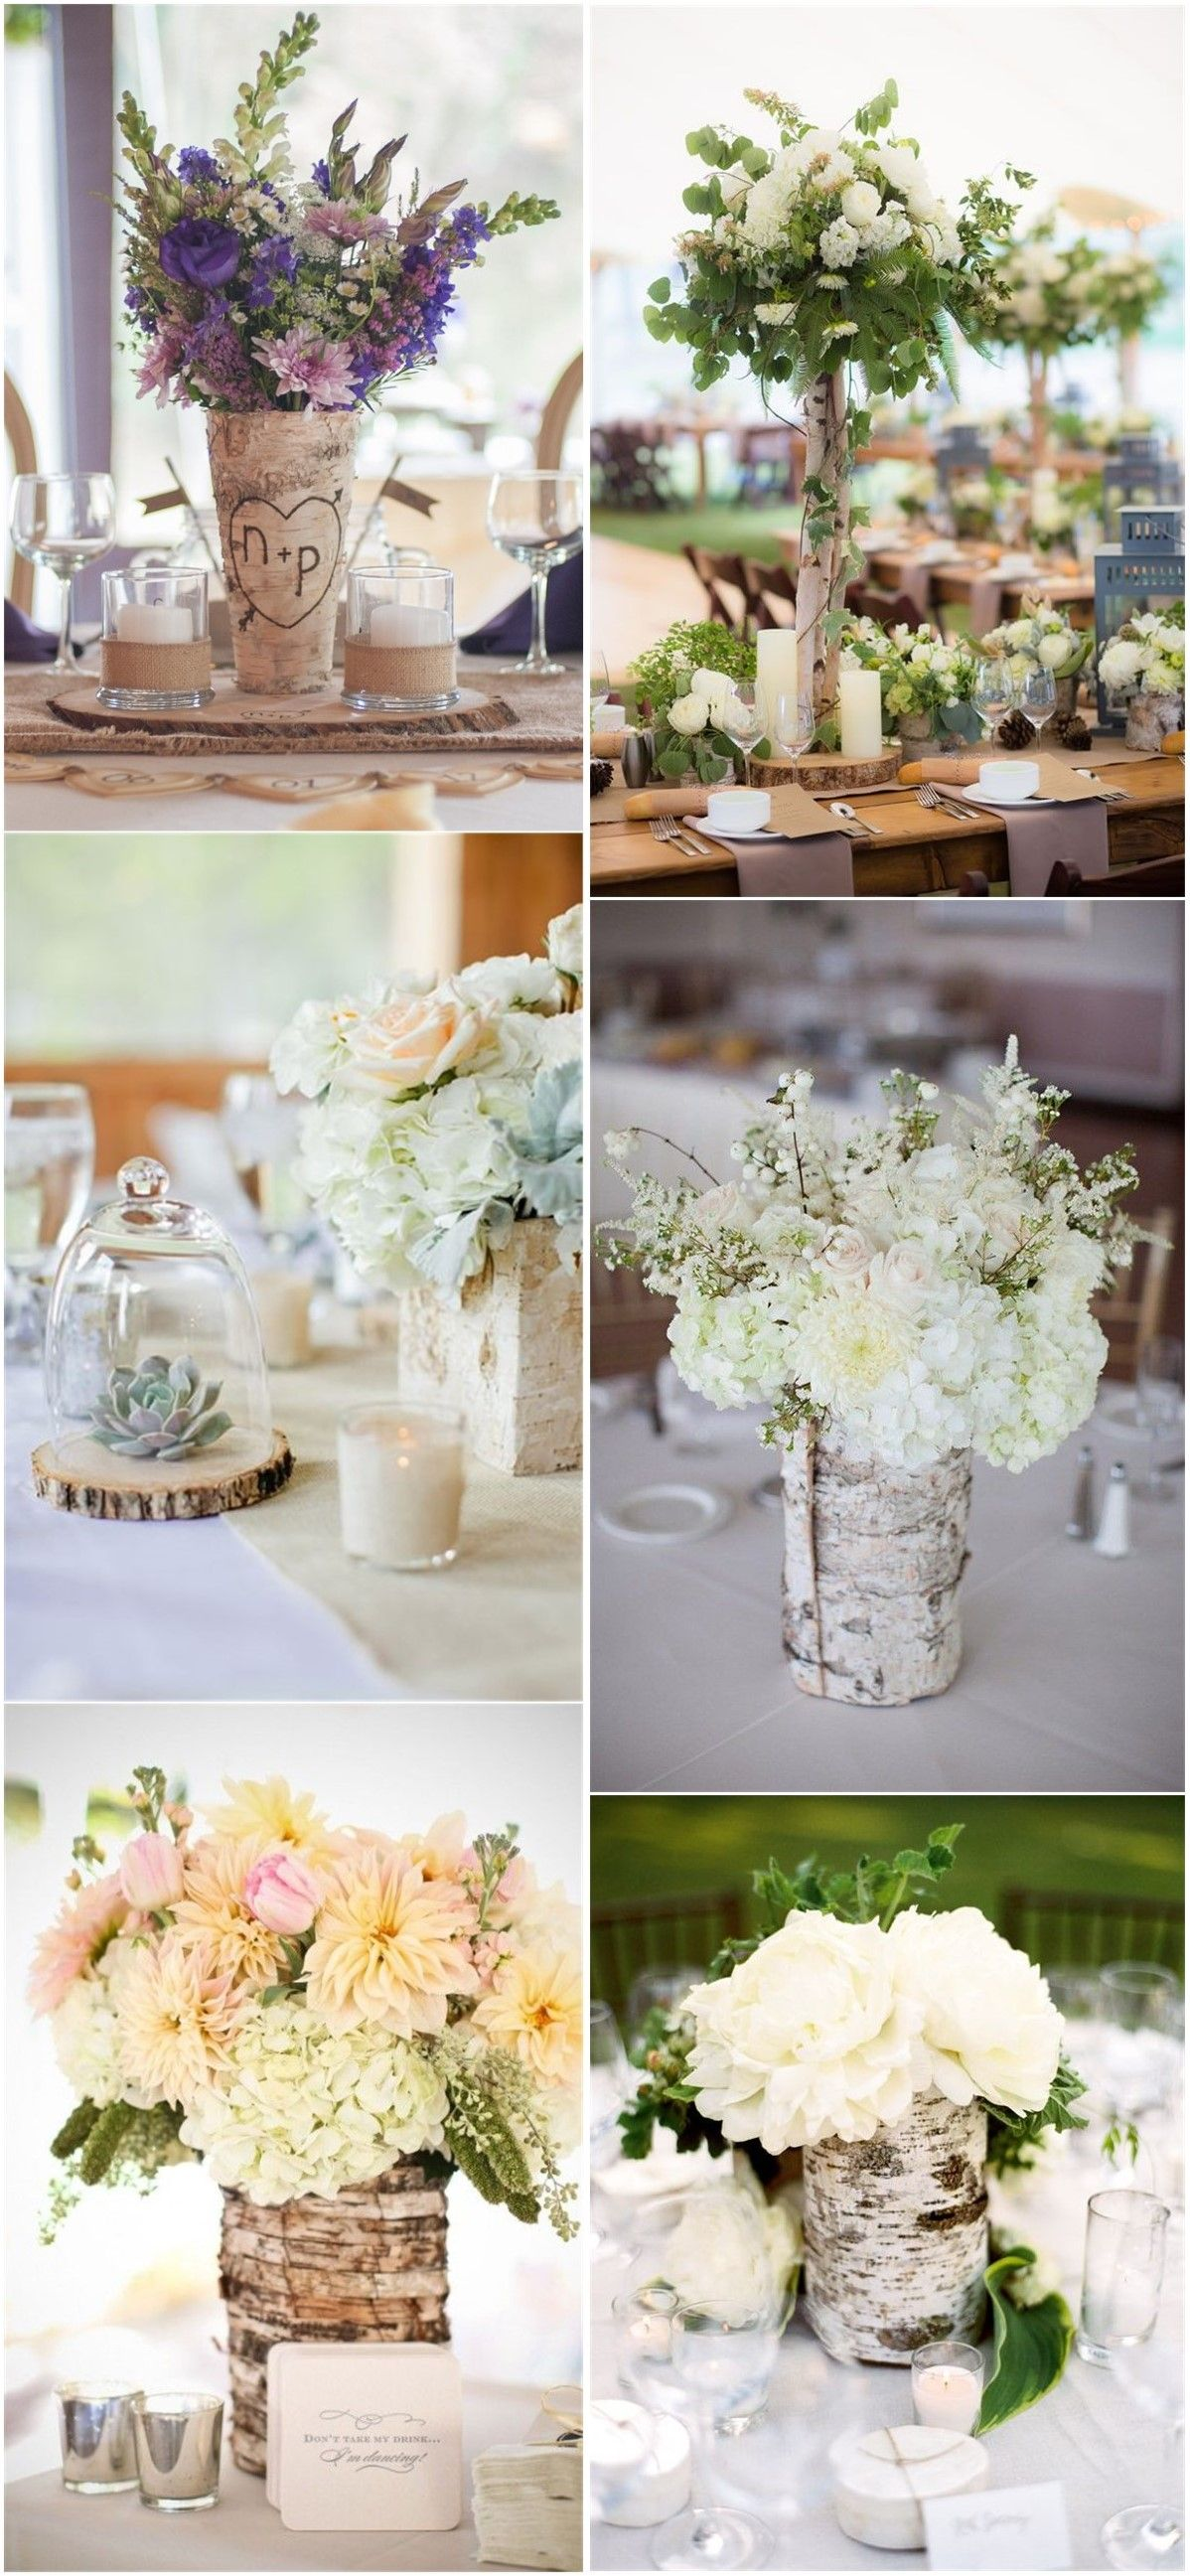 Wedding centerpieces 26 ideas to rock your winter wedding with 26 ideas to rock your winter wedding with birch centerpieces junglespirit Image collections